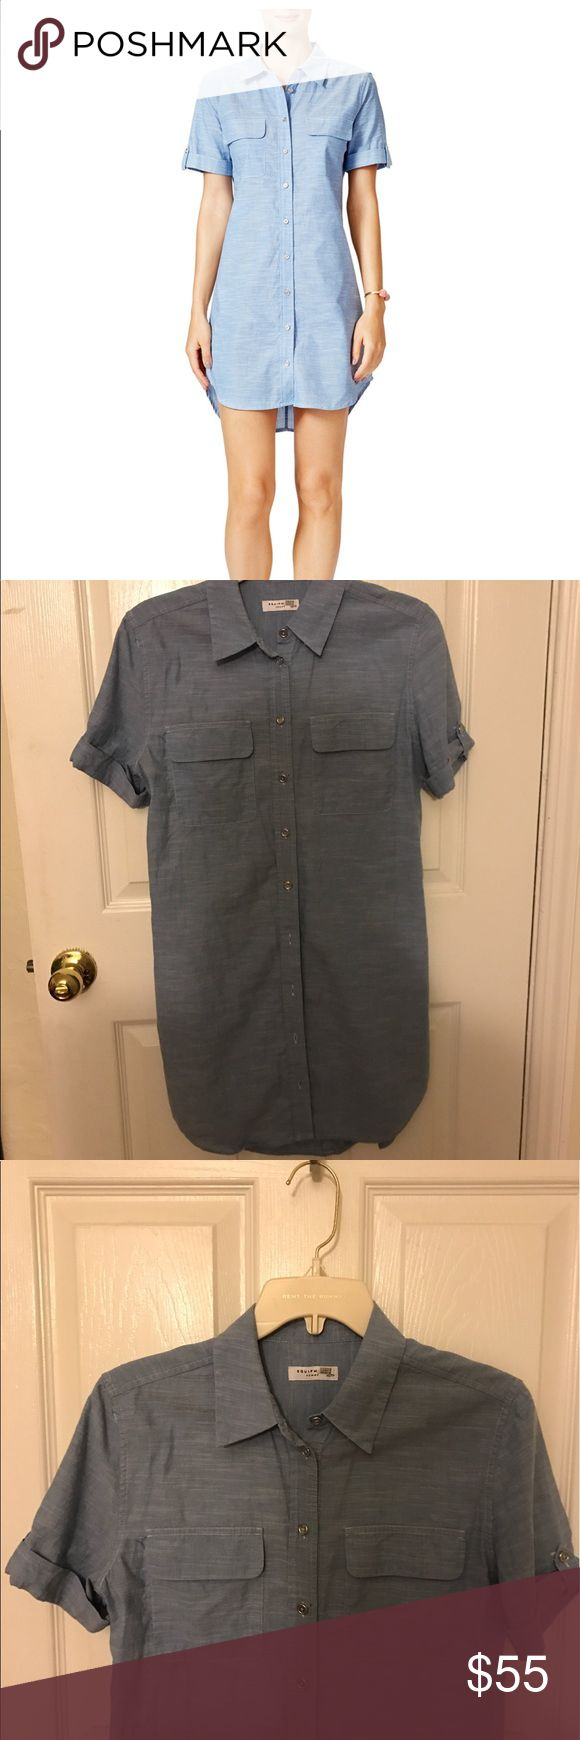 Chambray shirt dress Adorable chambray shirt dress 👗. Only worn a few times, light weight and super comfy! Equipment Dresses